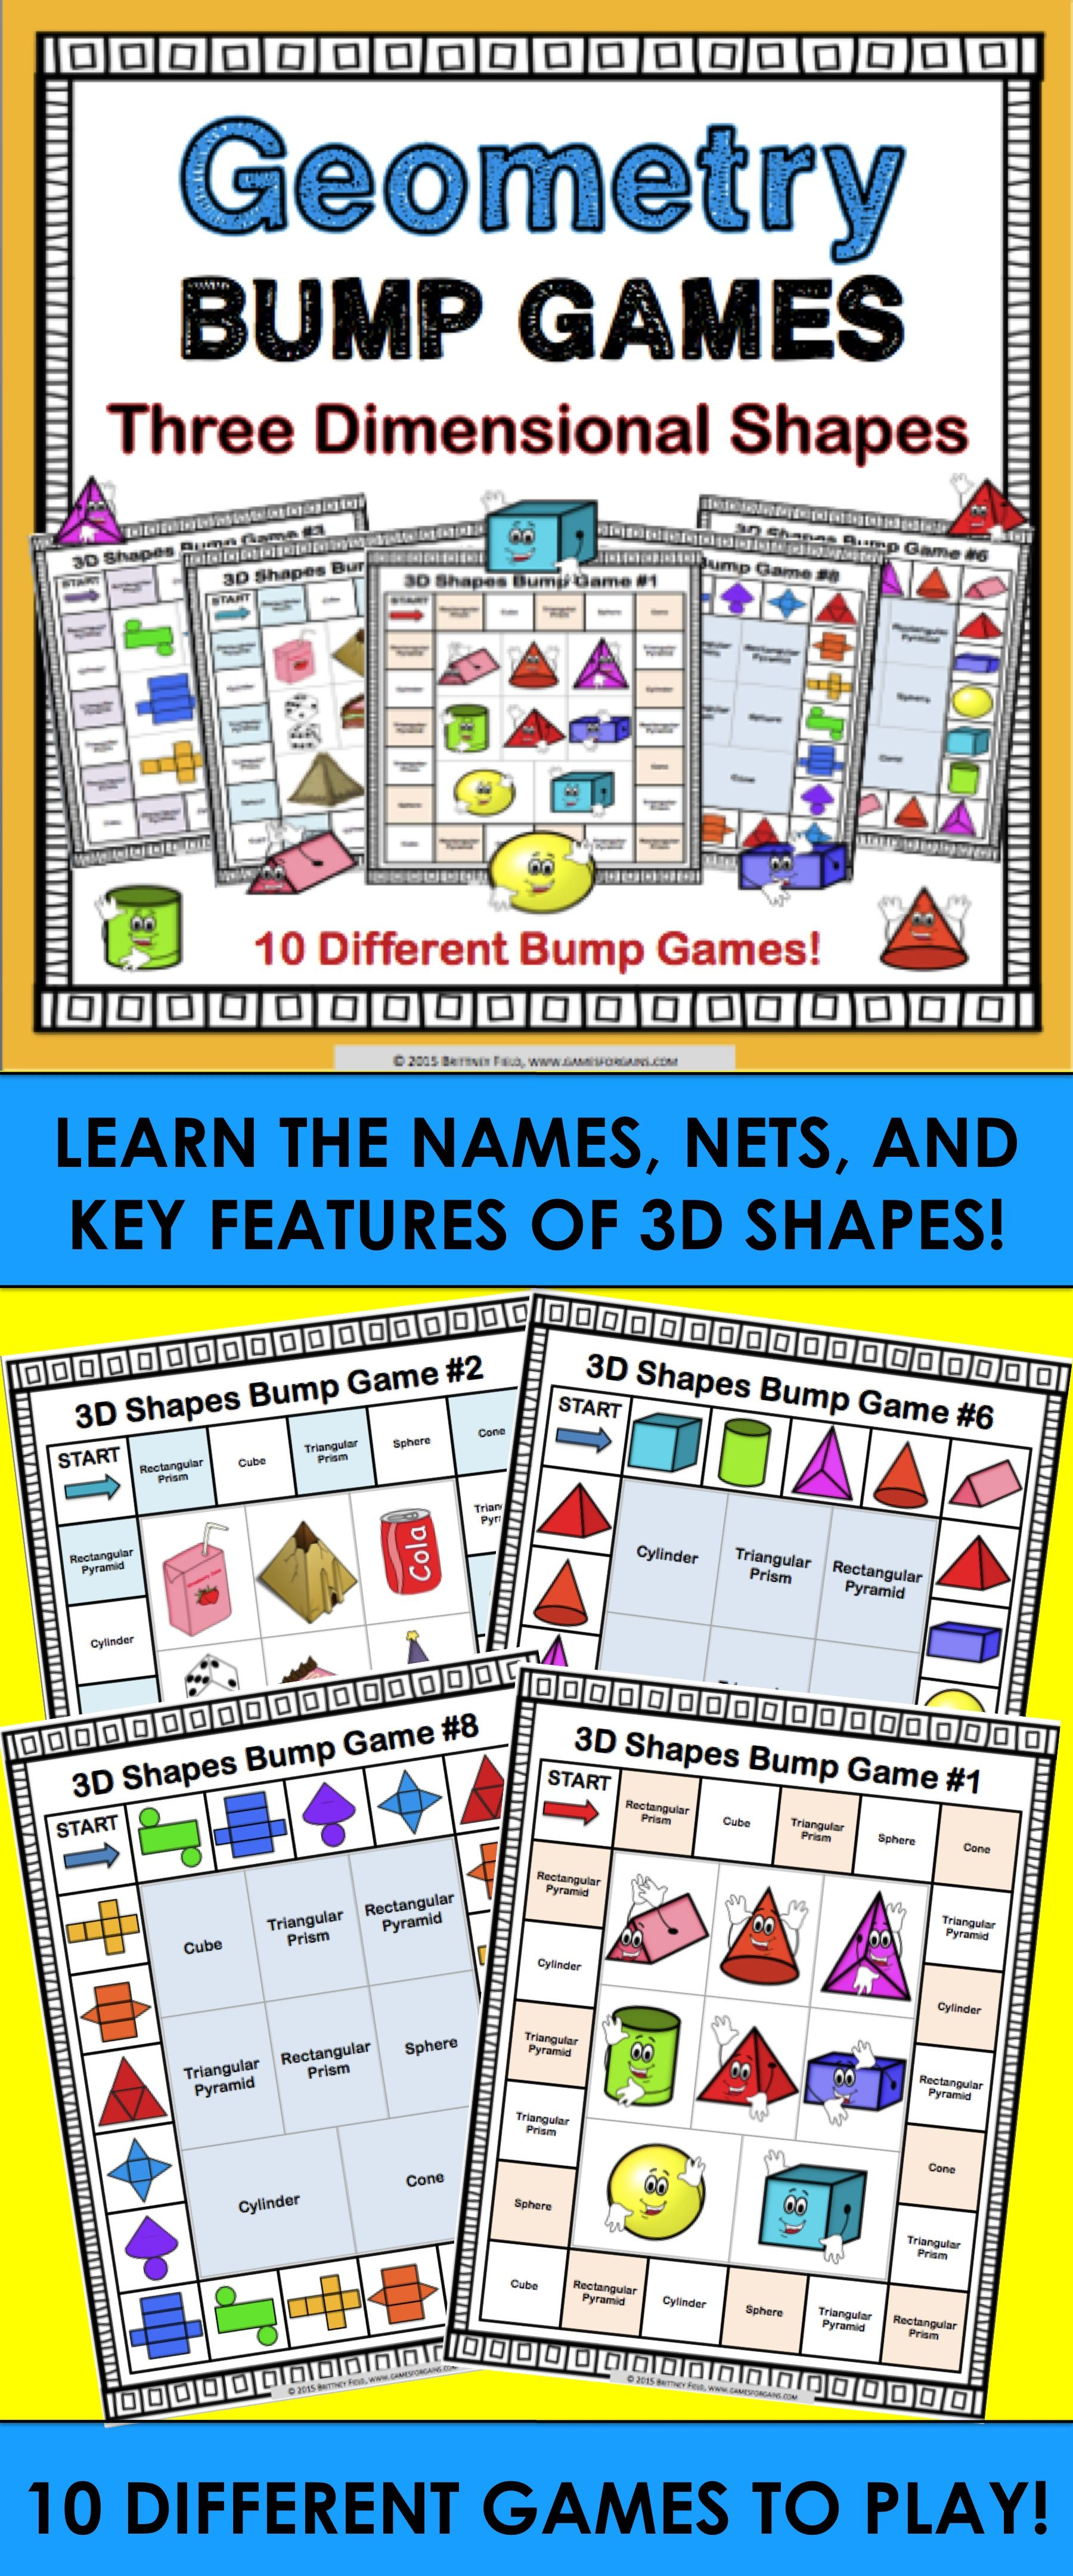 3d Shapes Bump Games Contains 10 Different Games To Help Students Practice Identifying And